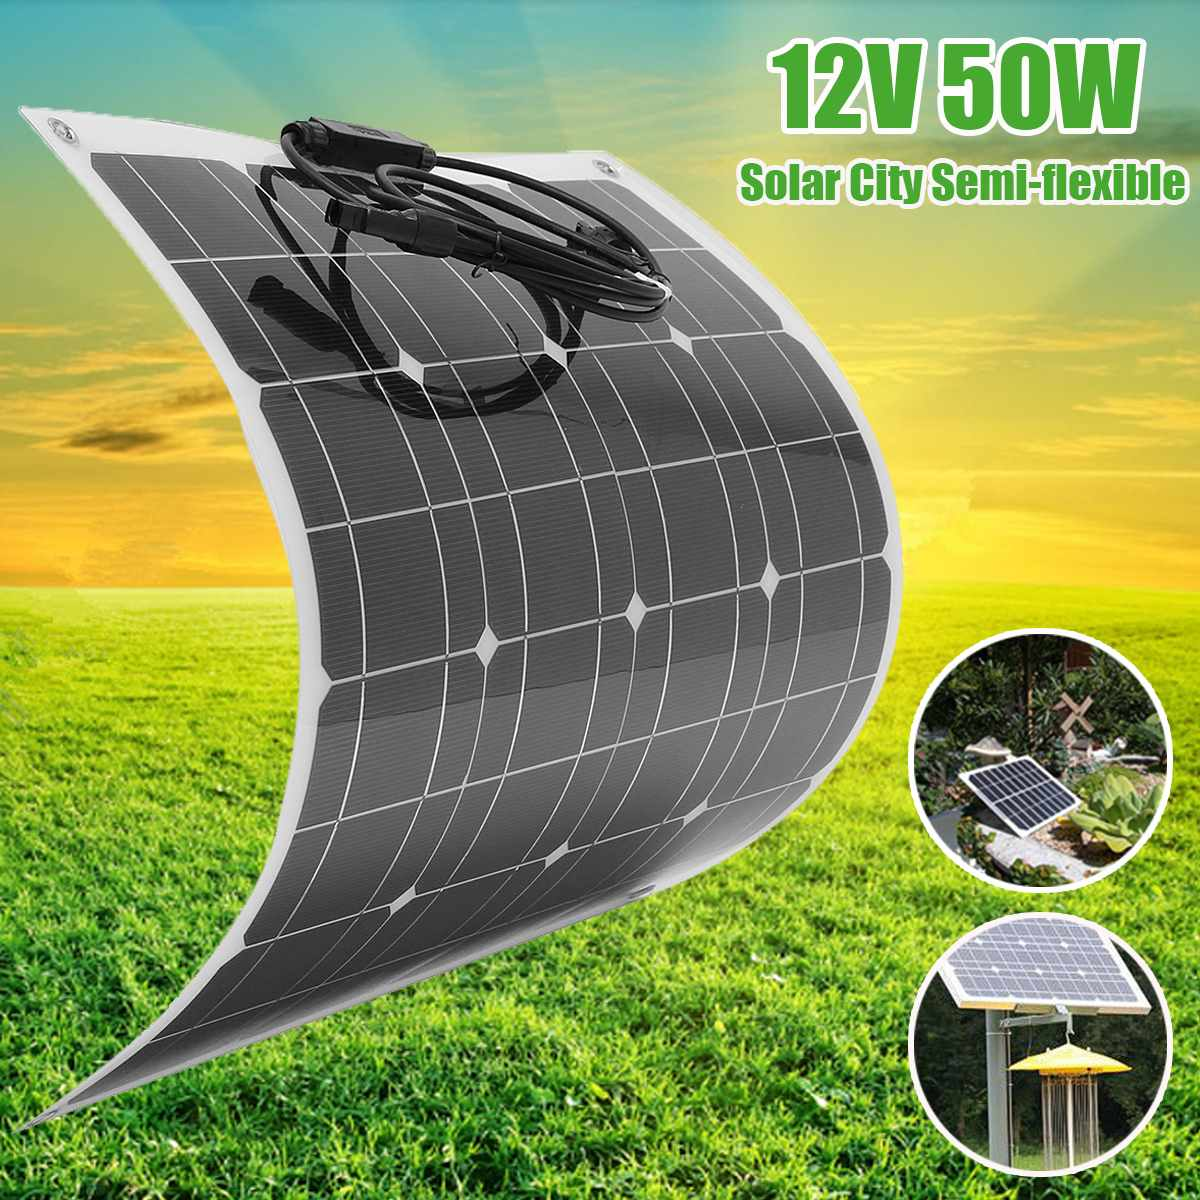 KINCO 60W/12V Semi-Flexible Solar Panel Monocrystalline Silicon Solar System Power Supply For Car Battery Charger 50w 12v semi flexible monocrystalline silicon solar panel solar battery power generater for battery rv car boat aircraft tourism